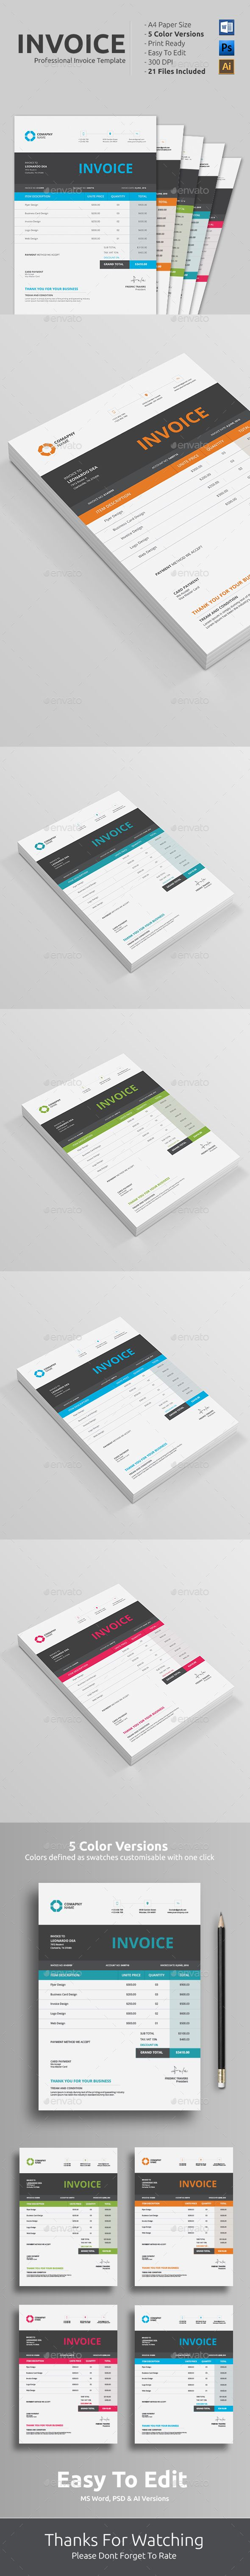 best ideas about invoice template invoice design invoice